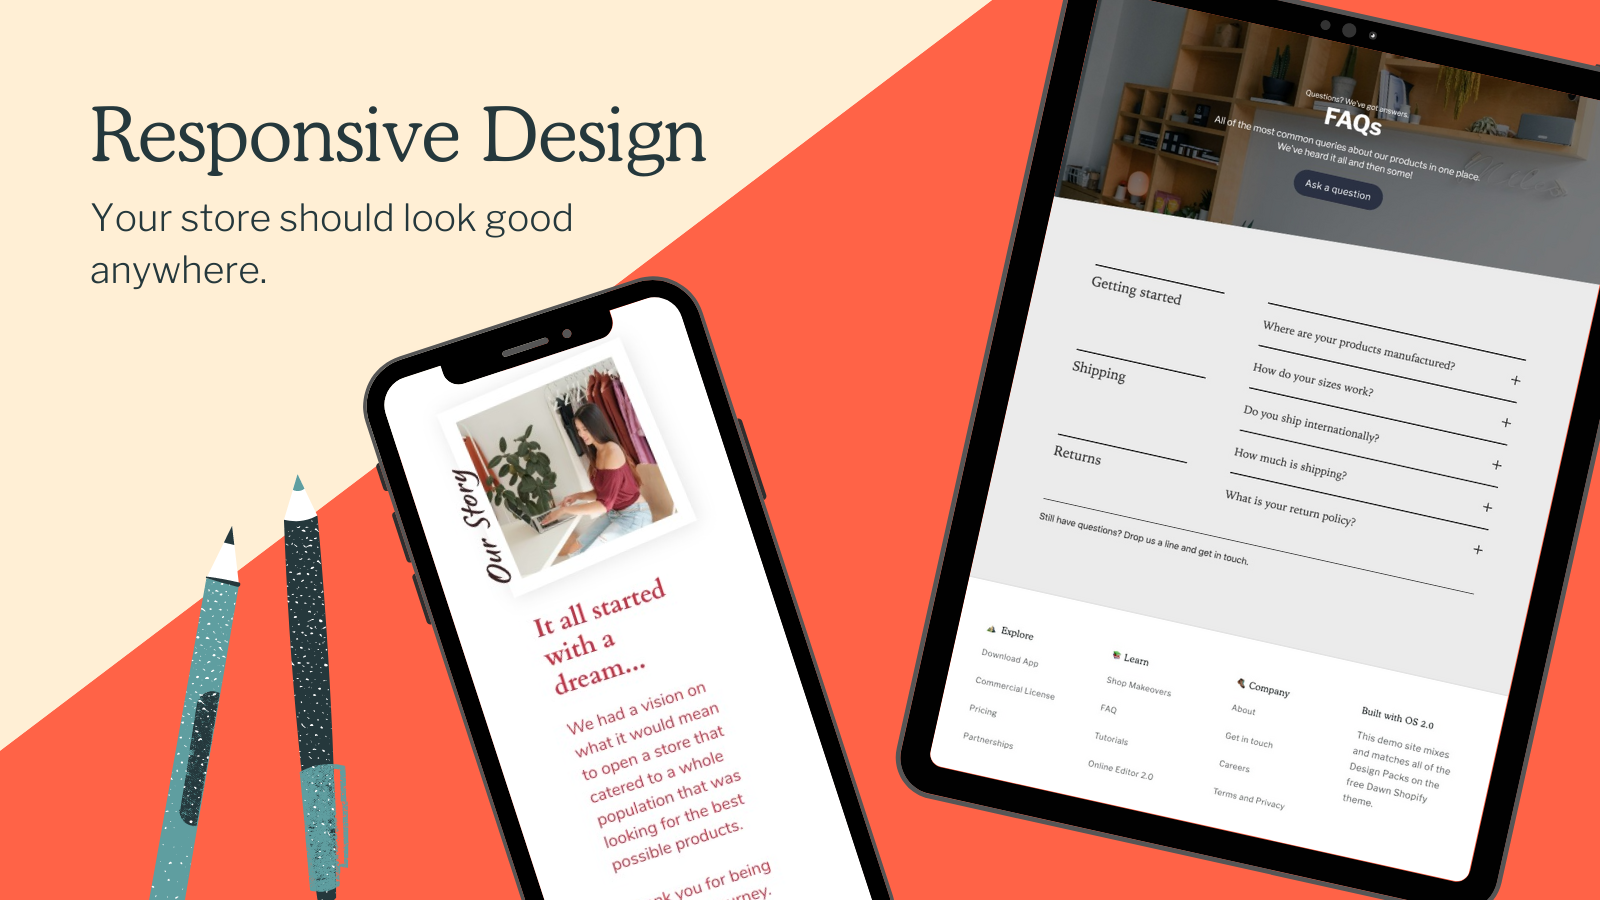 Responsive design looks great on all screensizes.